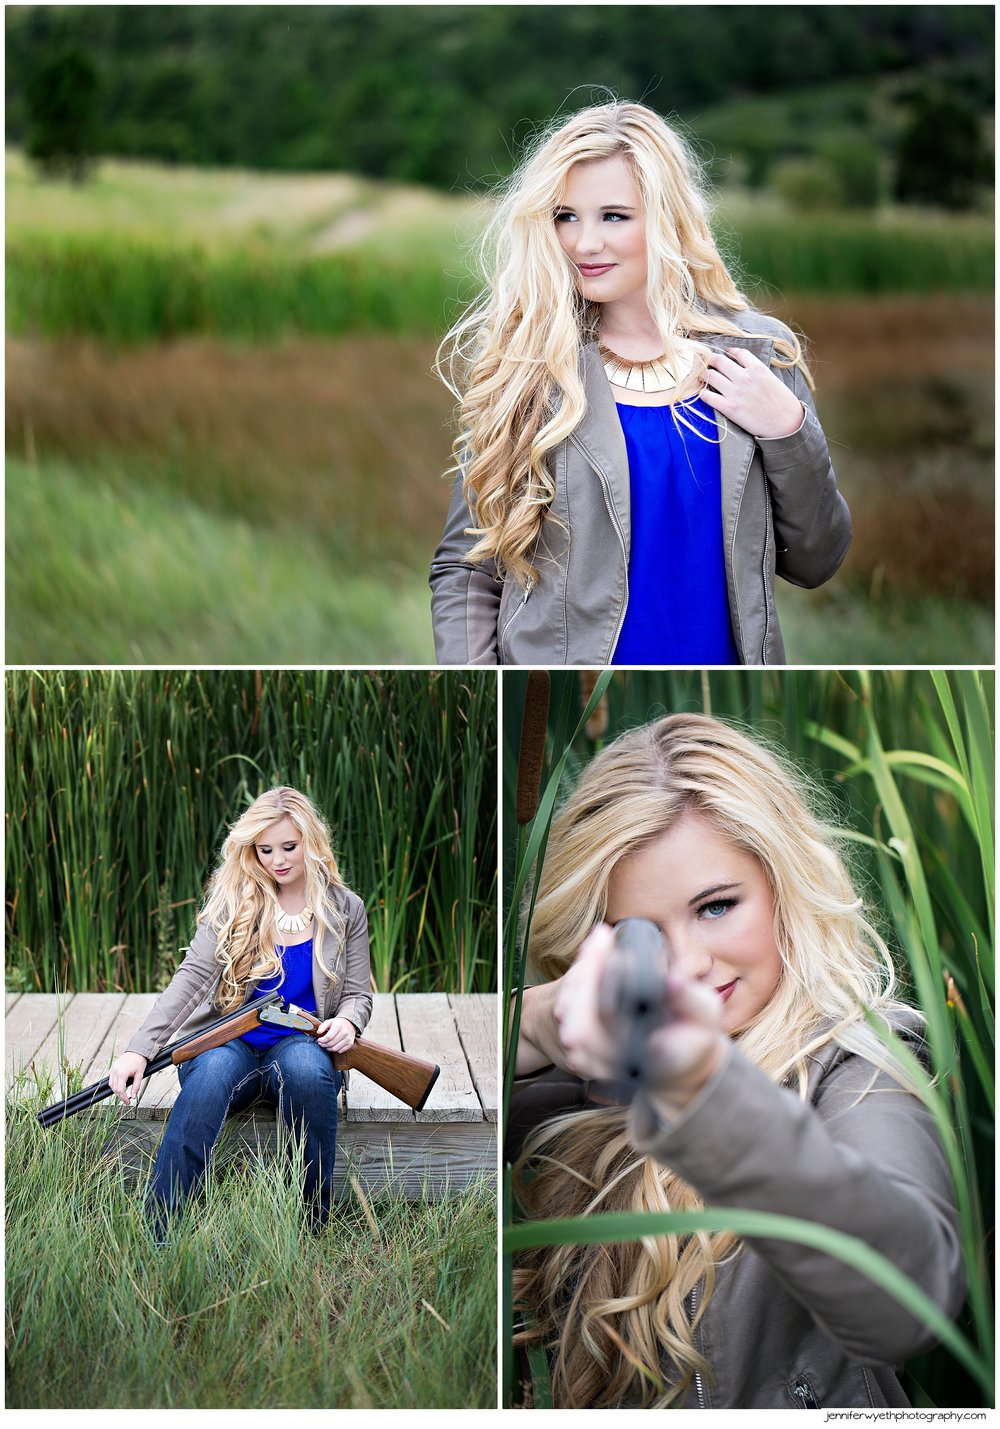 Jennifer-Wyeth-photography-senior-pictures-colorado-springs-photographer_0174.jpg